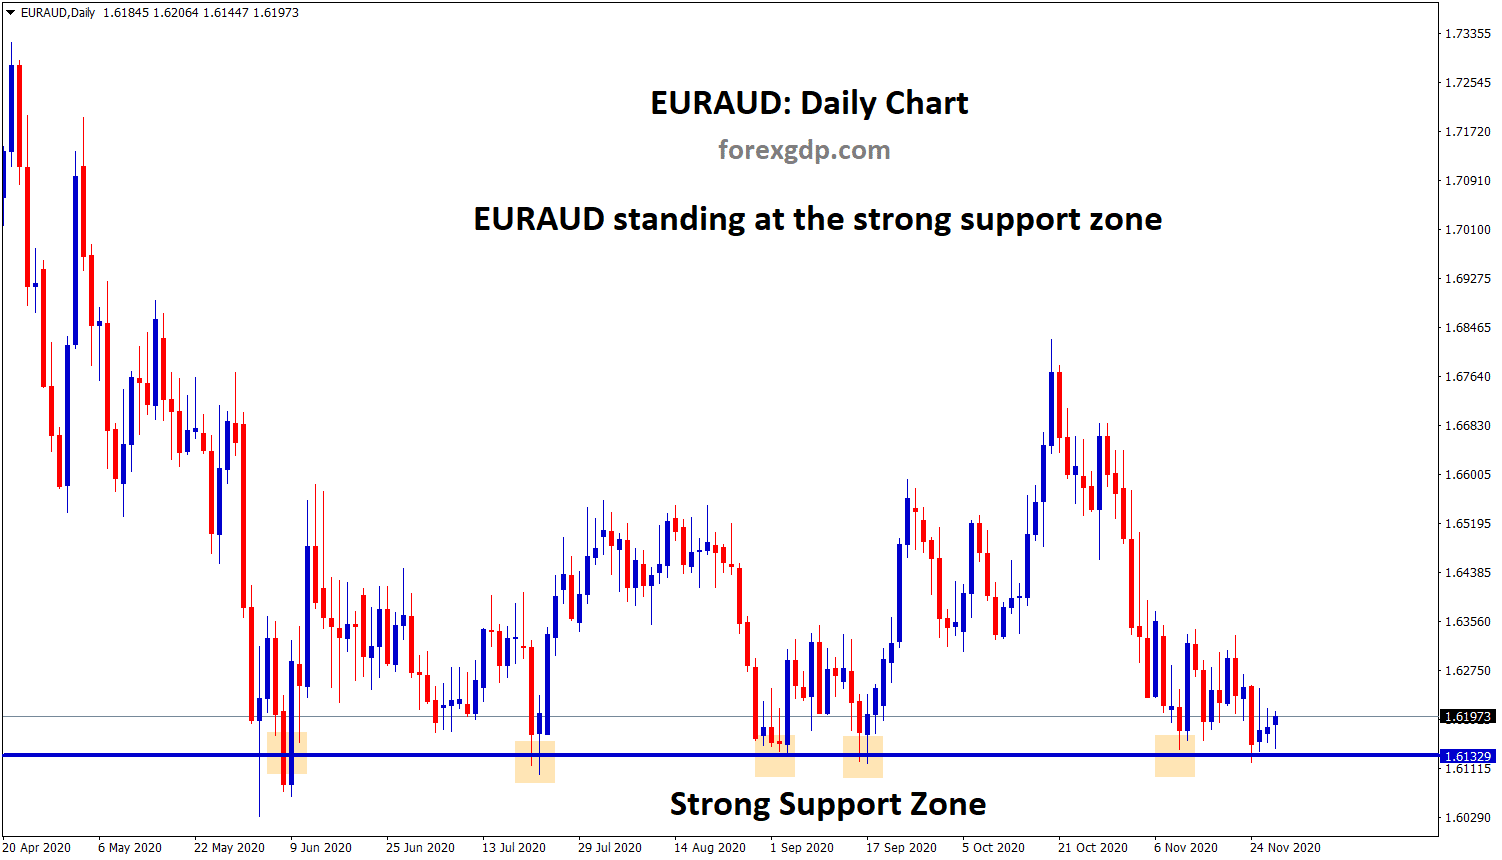 EURAUD strong support zone now